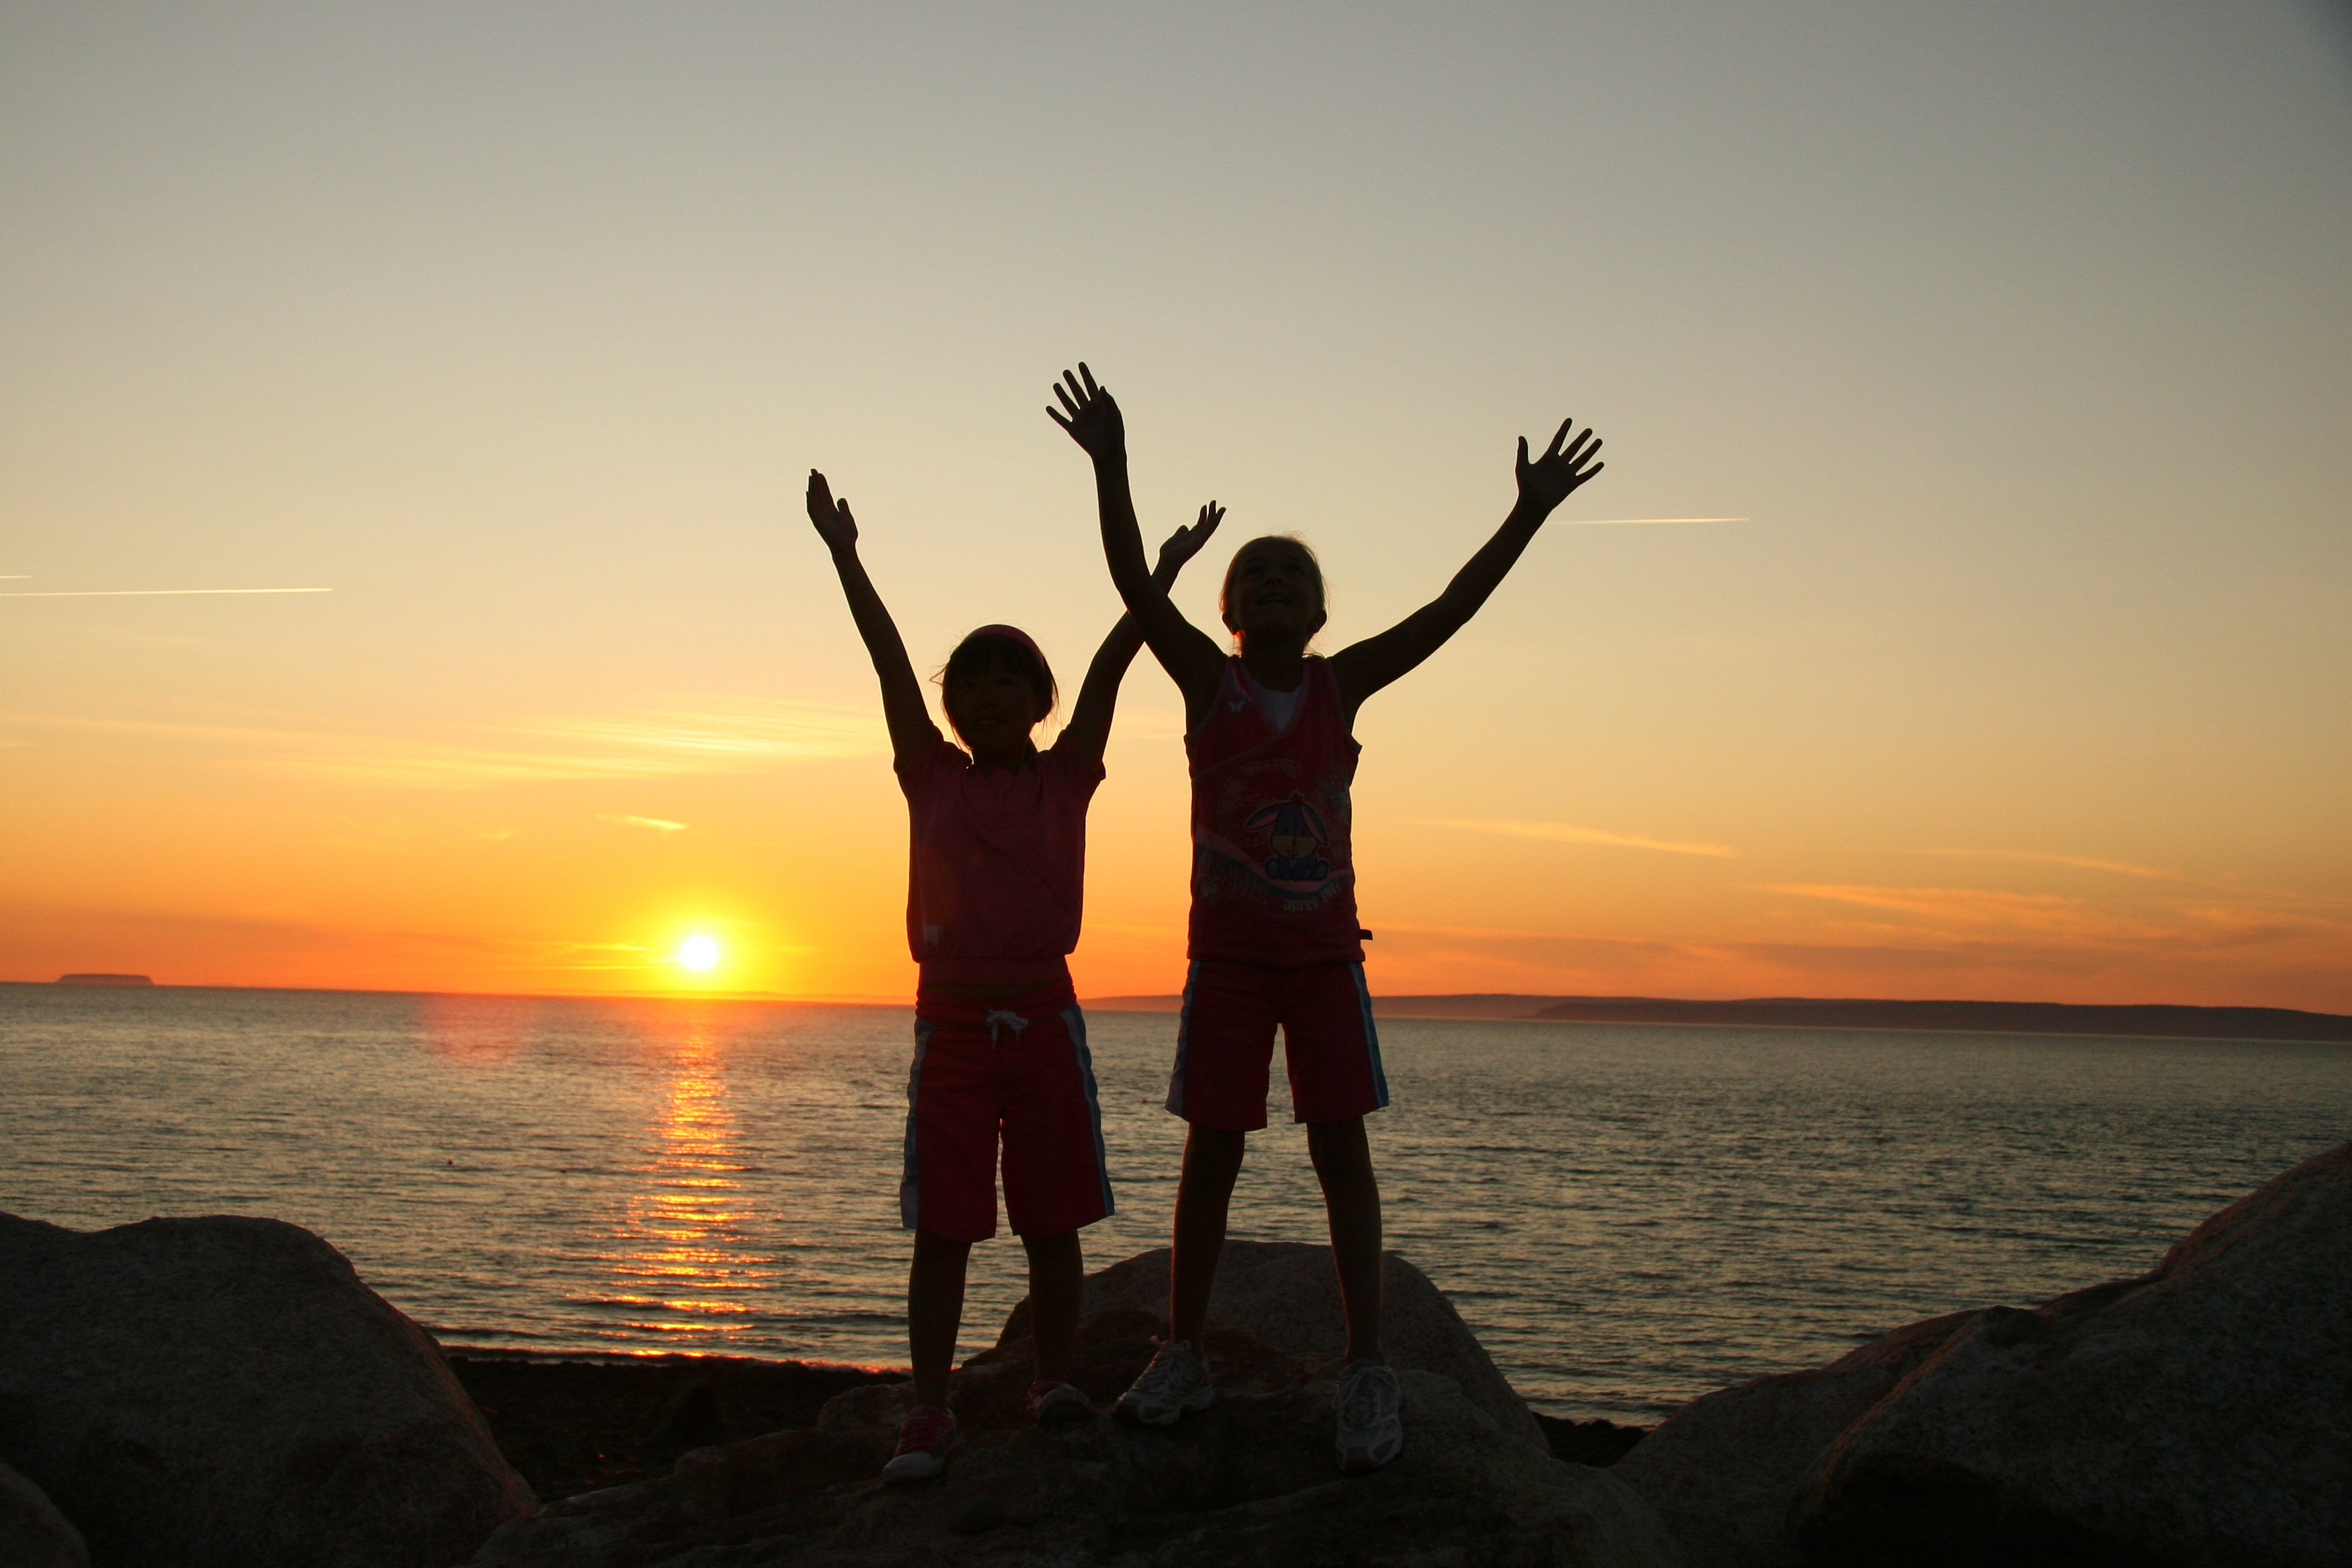 Silhouettes of two children in front of sunset over the ocean